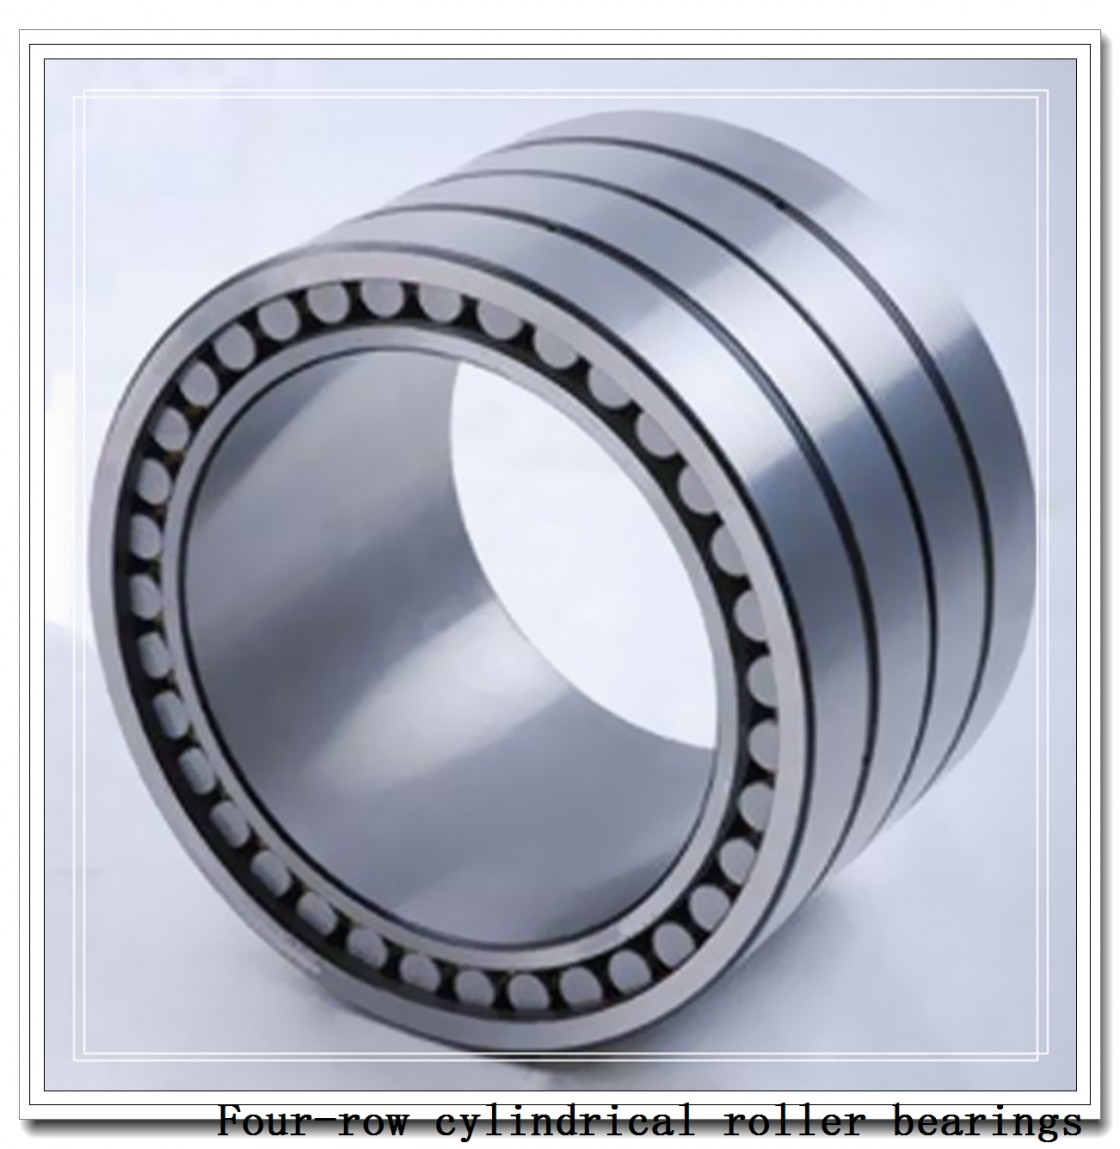 560ARXS2644 625RXS2644 Four-Row Cylindrical Roller Bearings